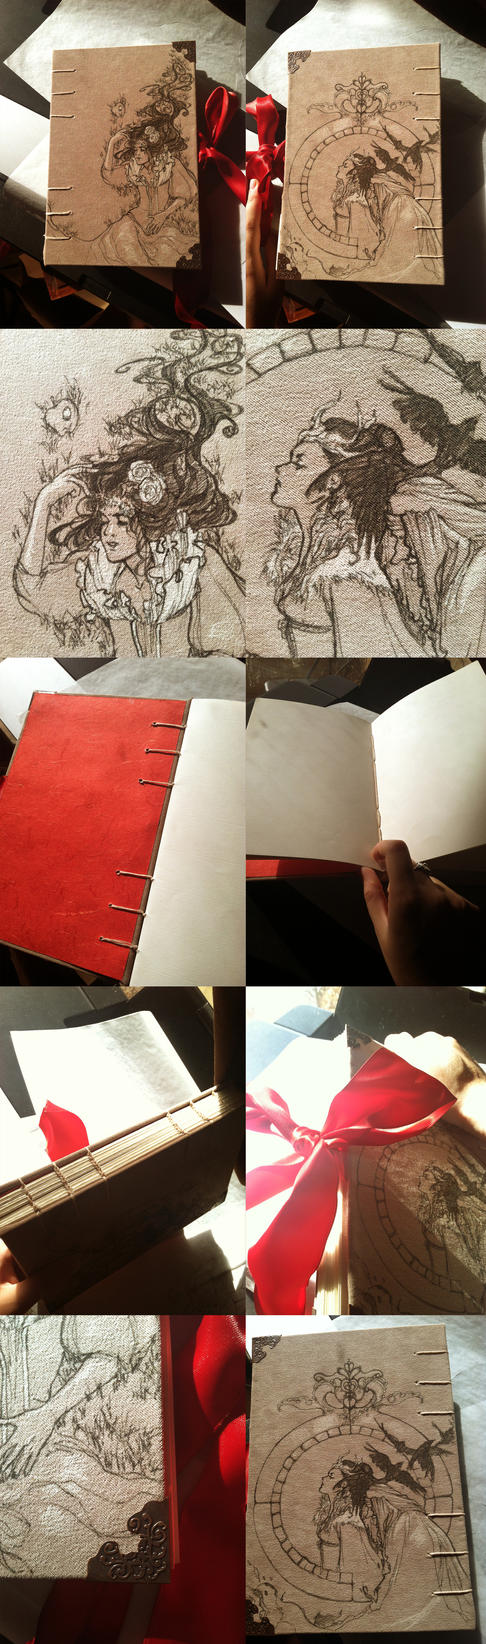 Snow White Moleskin Sketchbook: SOLD by Newsha-Ghasemi